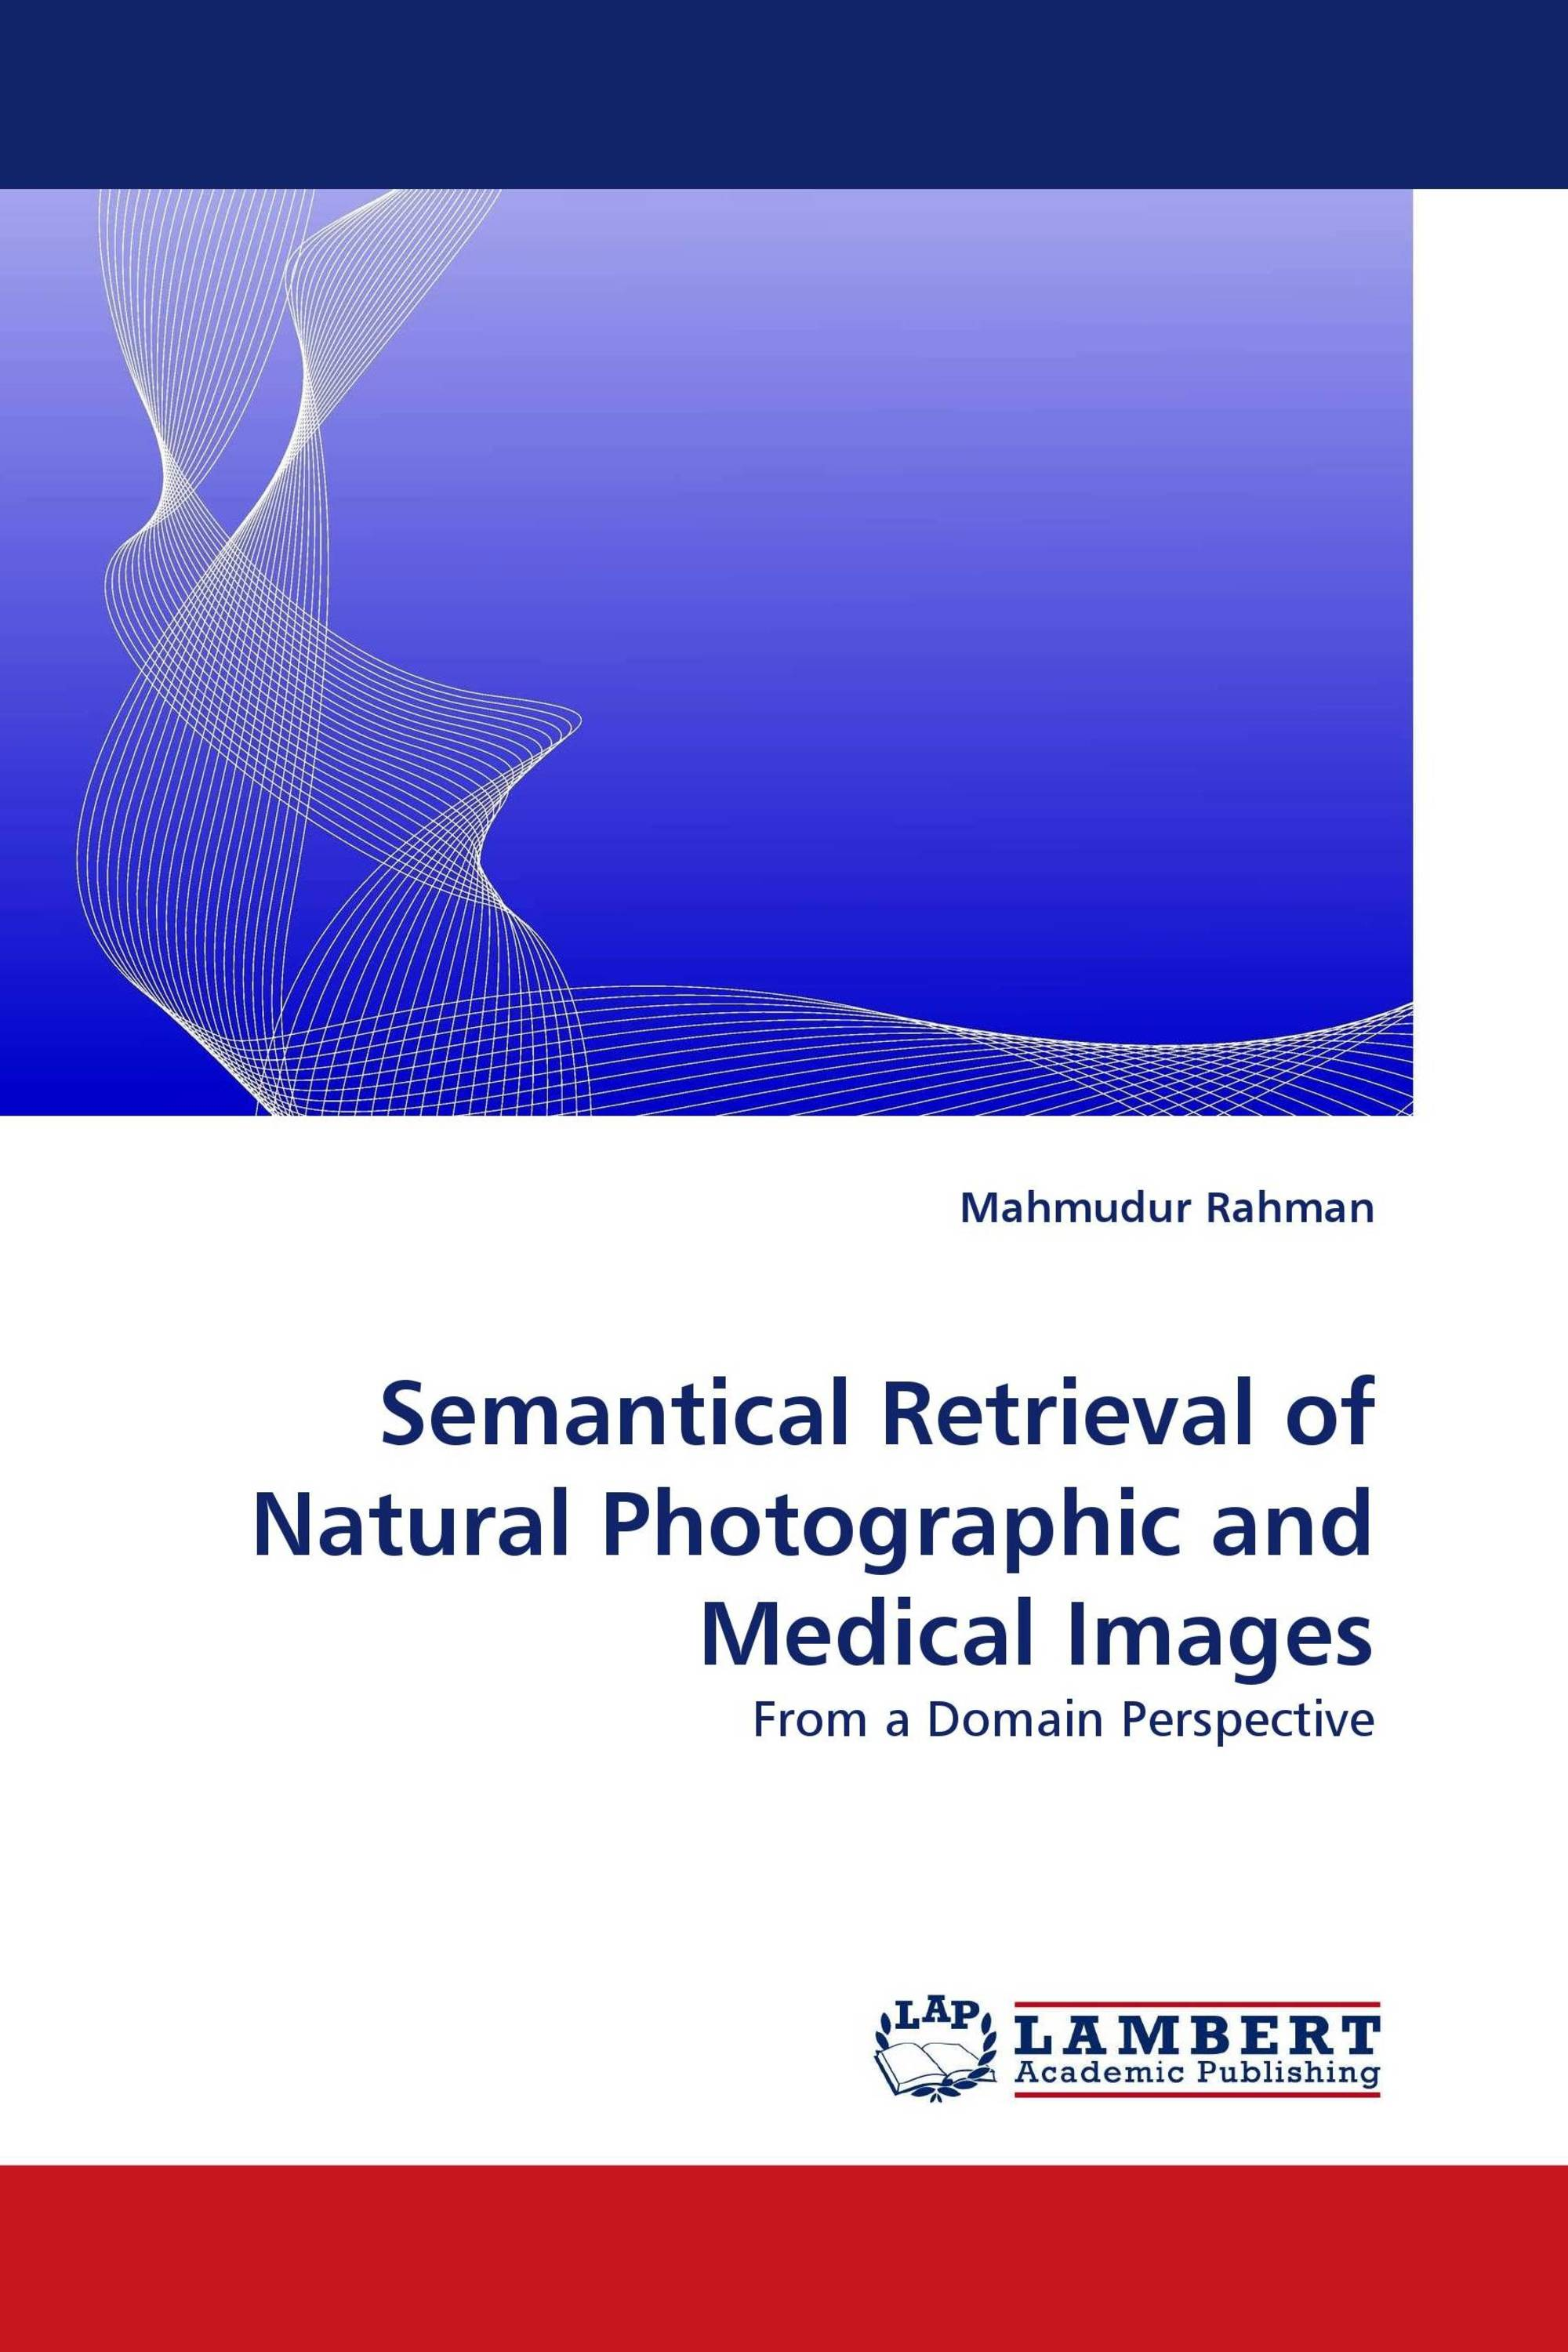 Semantical Retrieval of Natural Photographic and Medical Images